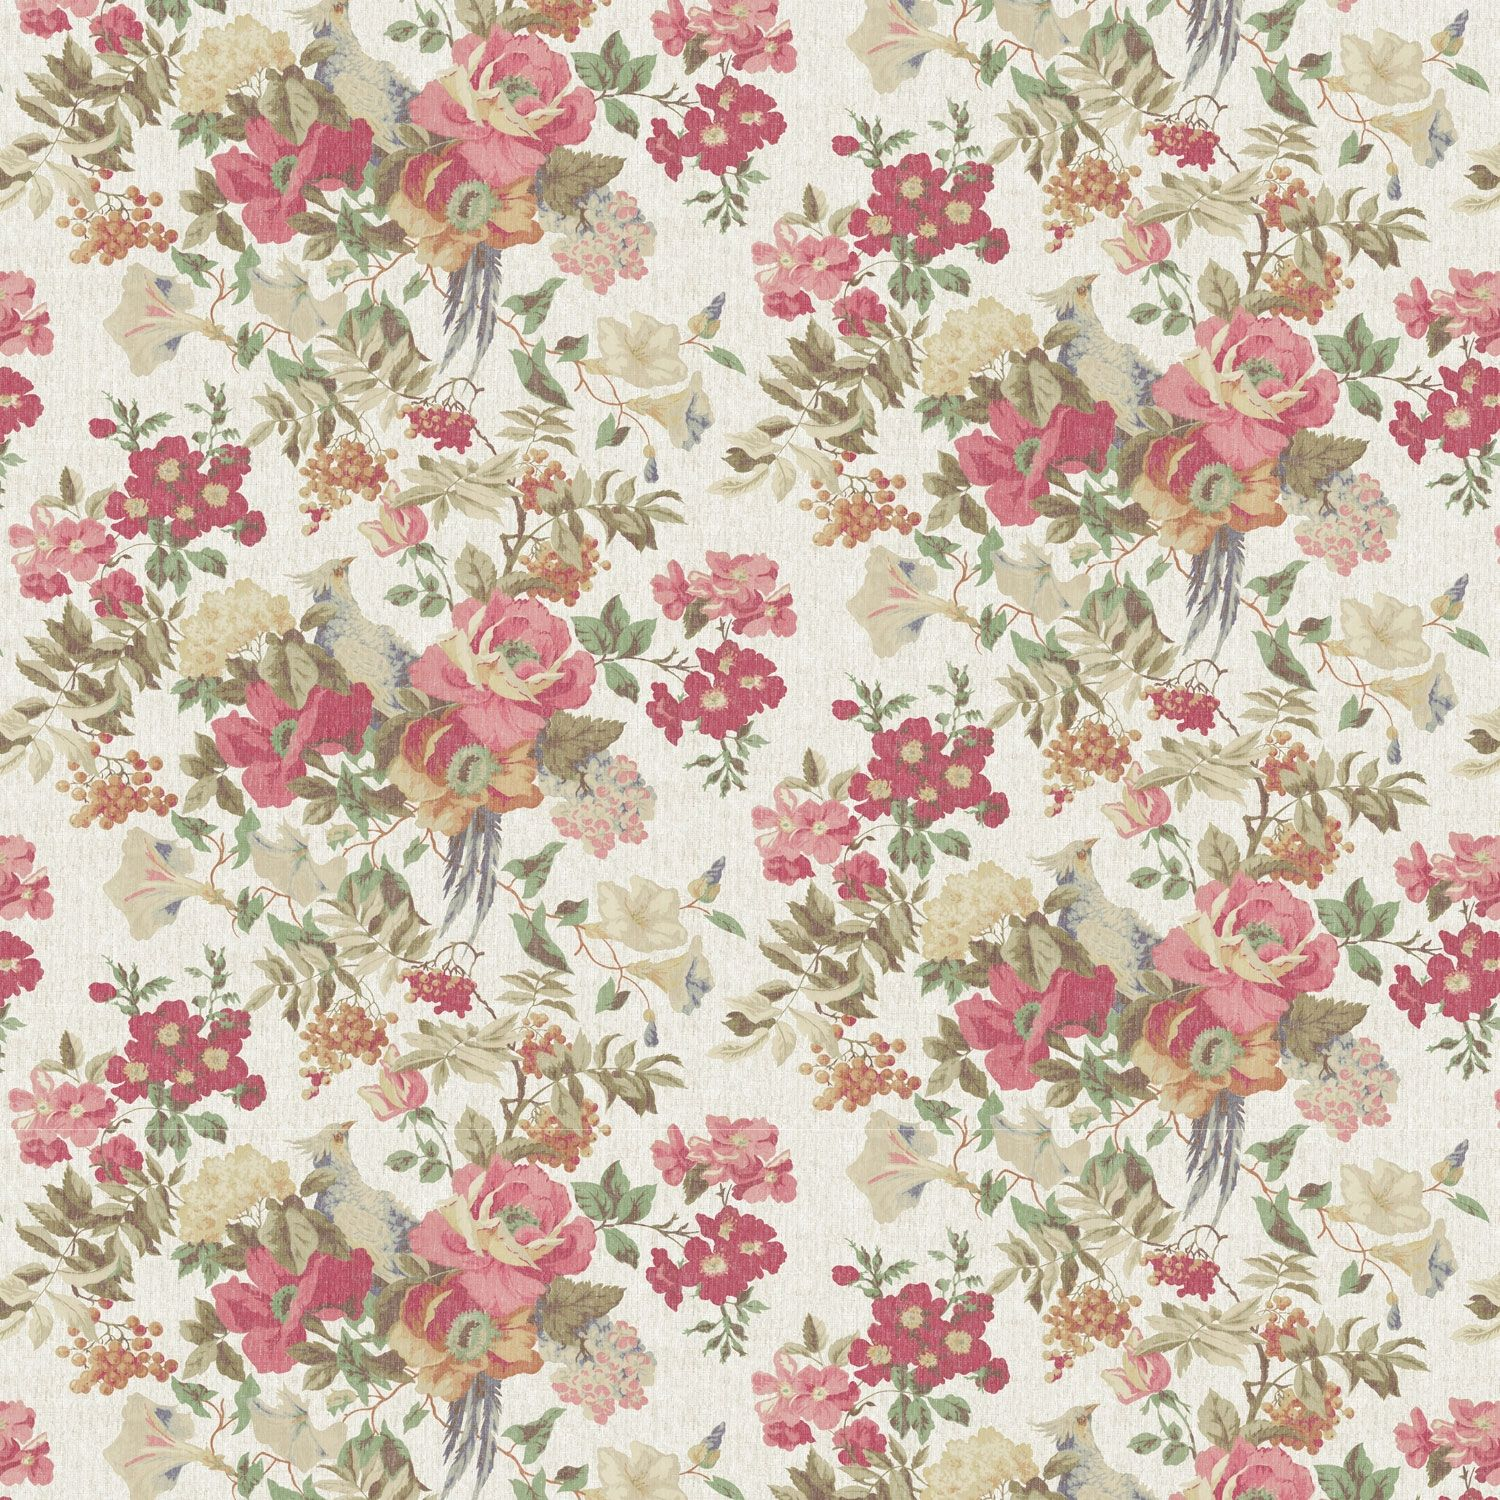 Vintage floral iphone wallpaper tumblr - Vintage Floral Wallpaper Hd For Pc